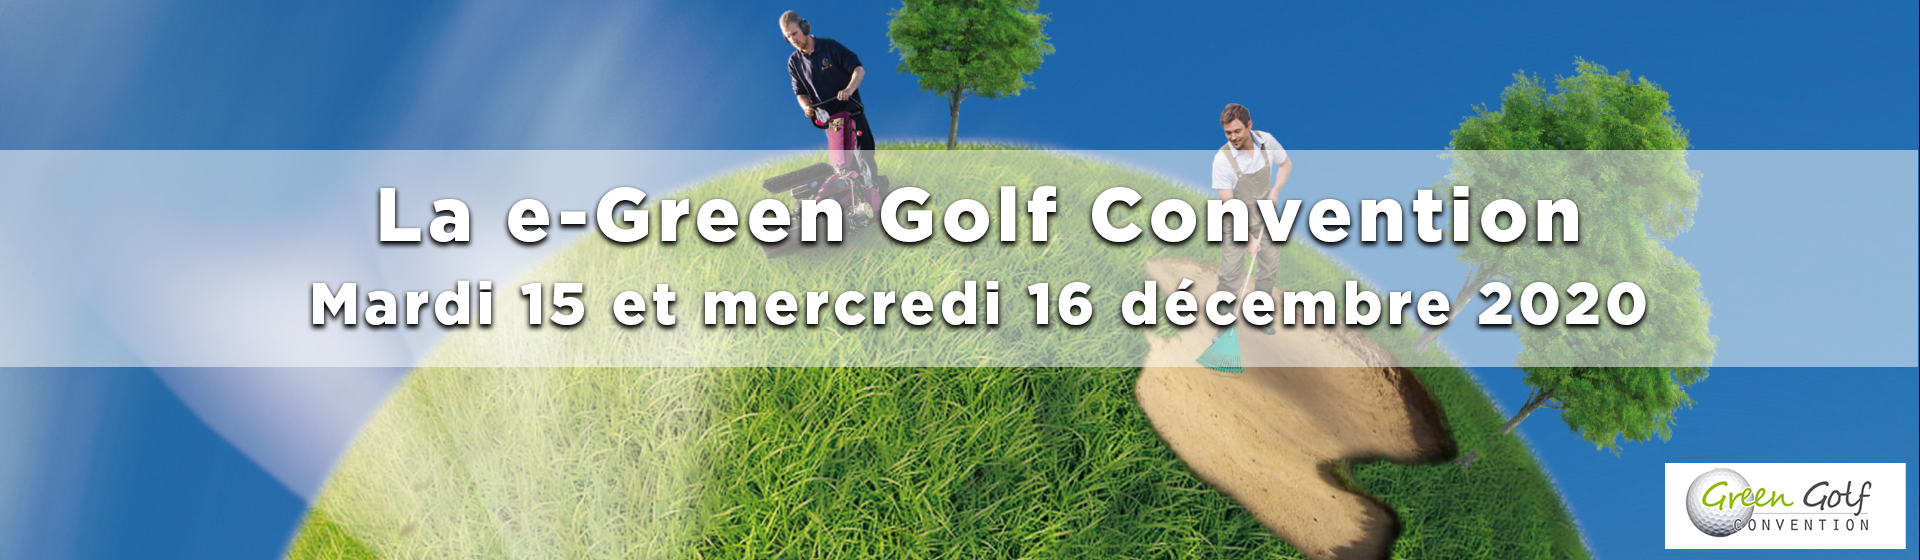 e-green-golf-convention-2020